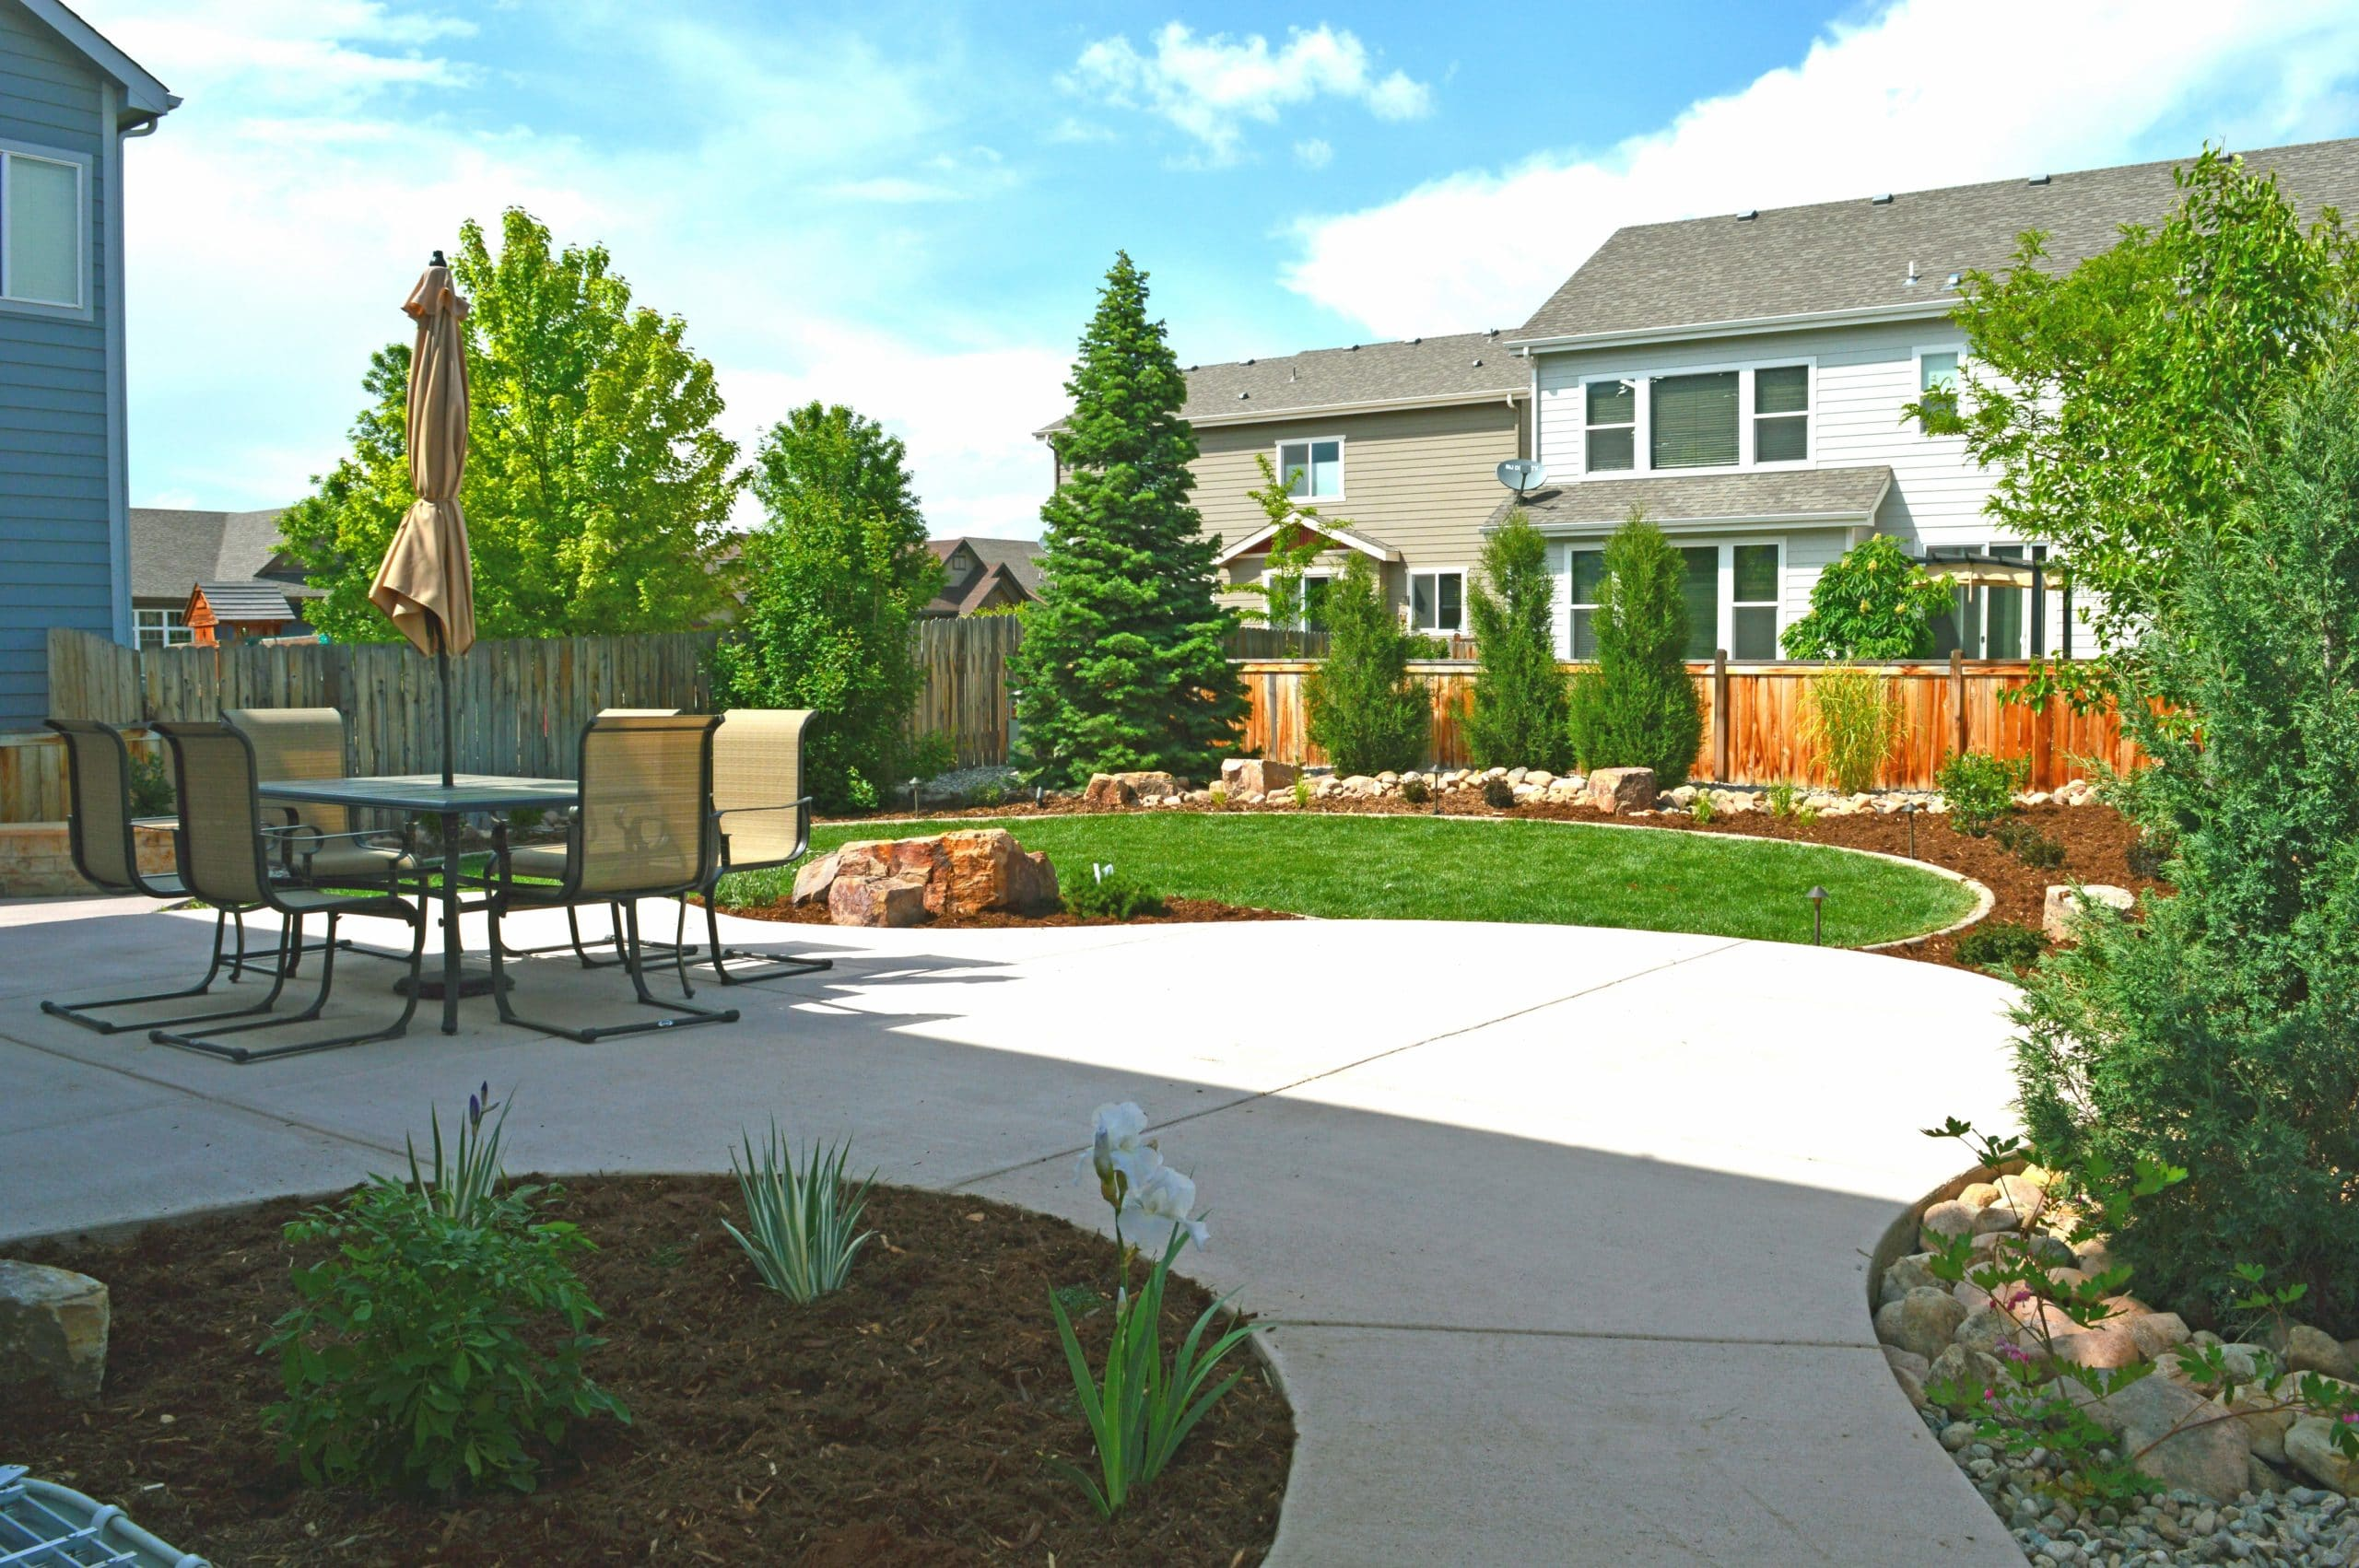 Concrete patio with concrete mow strip as well as mulch and large decorative rock filled with plants, bushes, and trees.